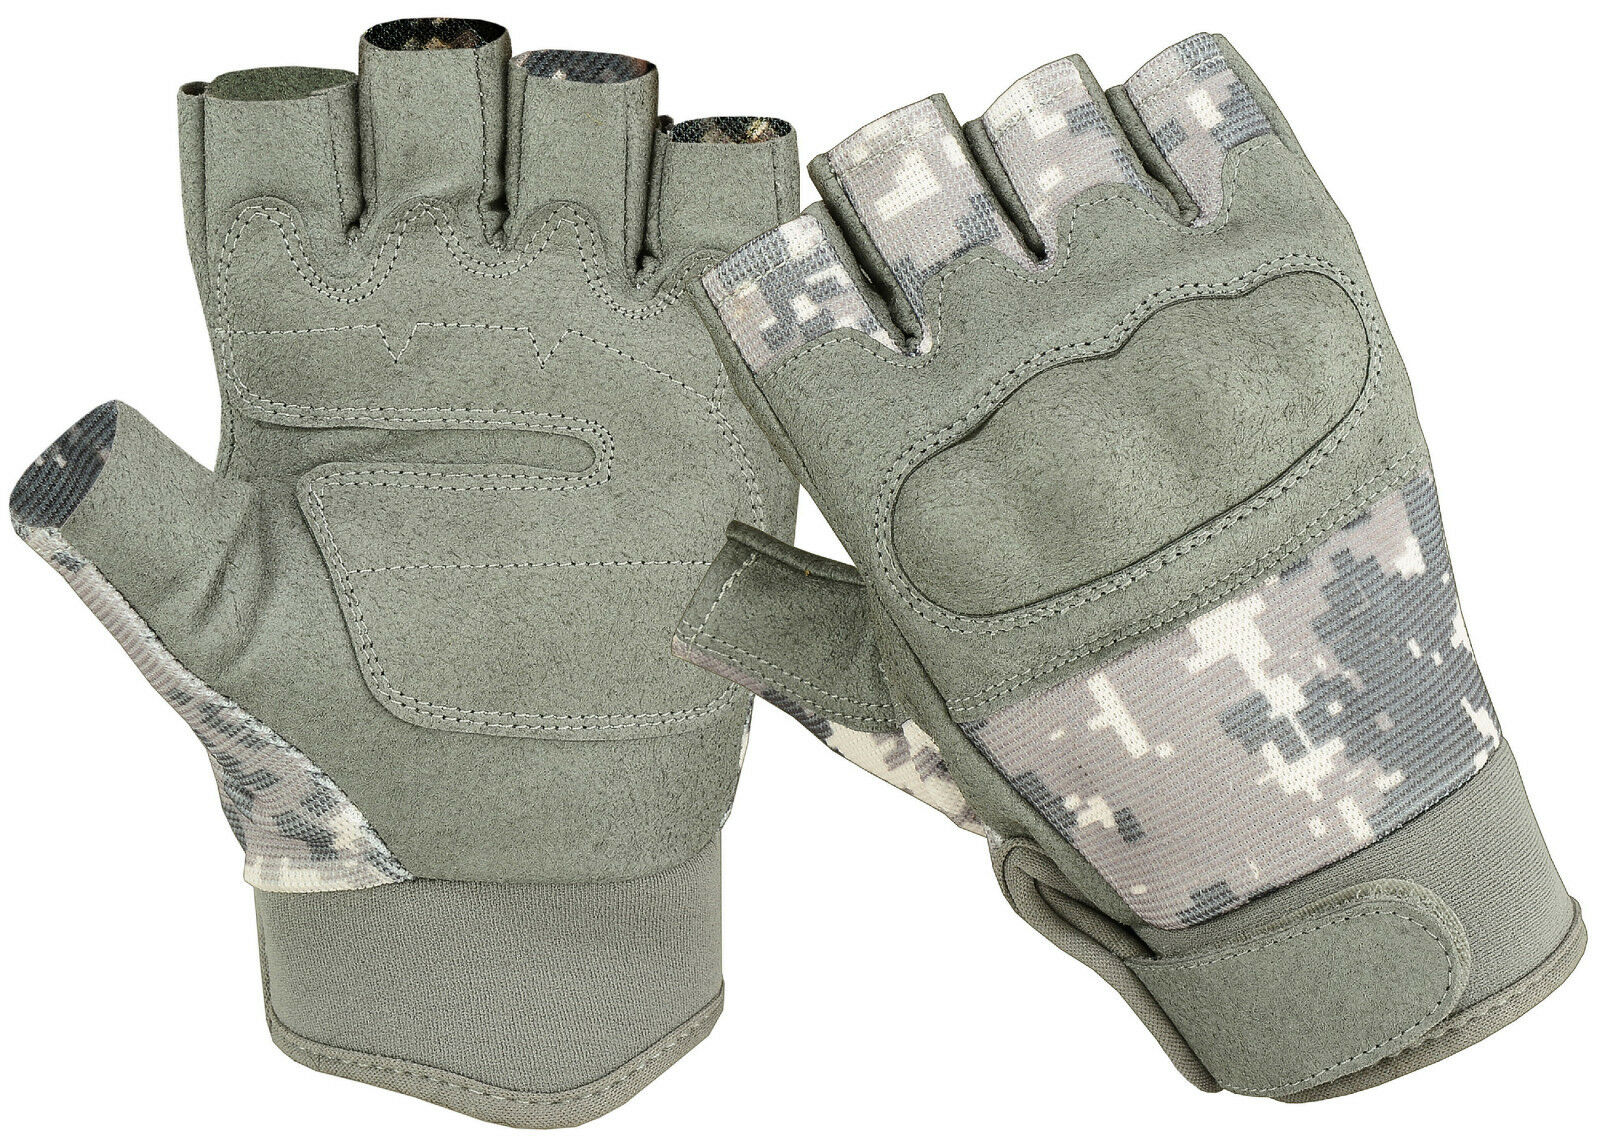 Fingerless Military Airsoft Tactical Hard Knuckle 1/2 Finger Shooting Gloves ACU